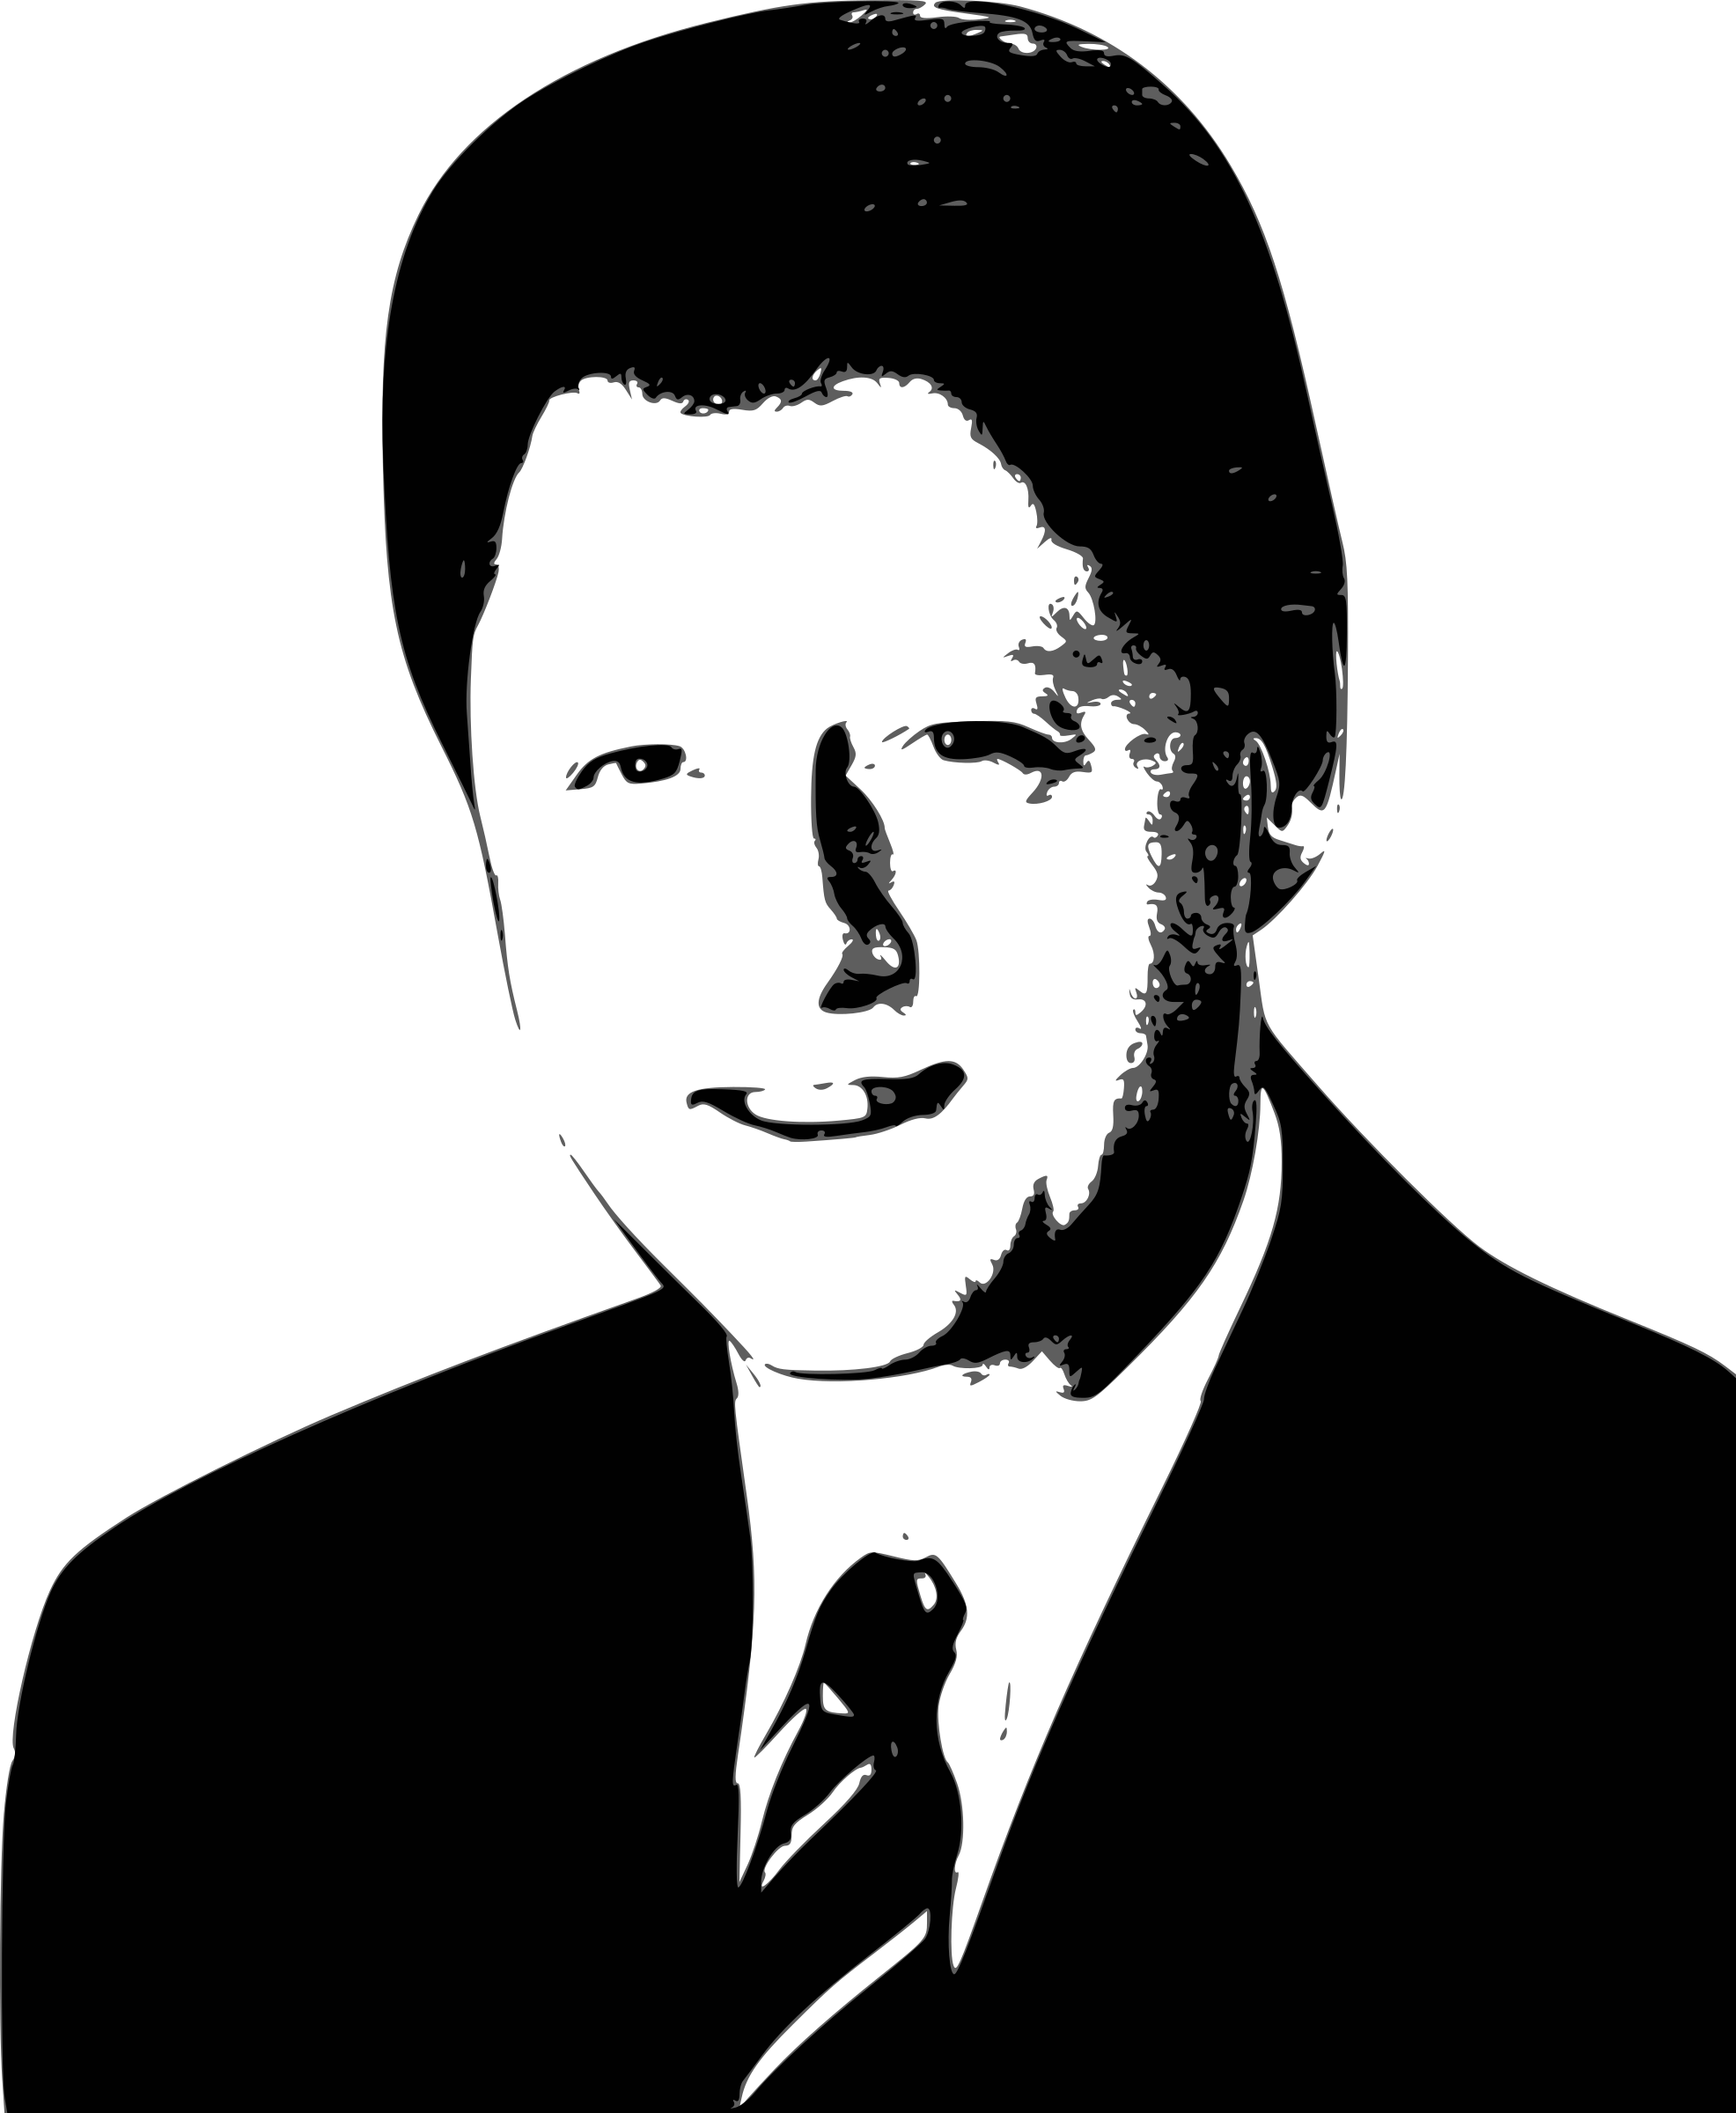 Bill Clinton by Ramchand